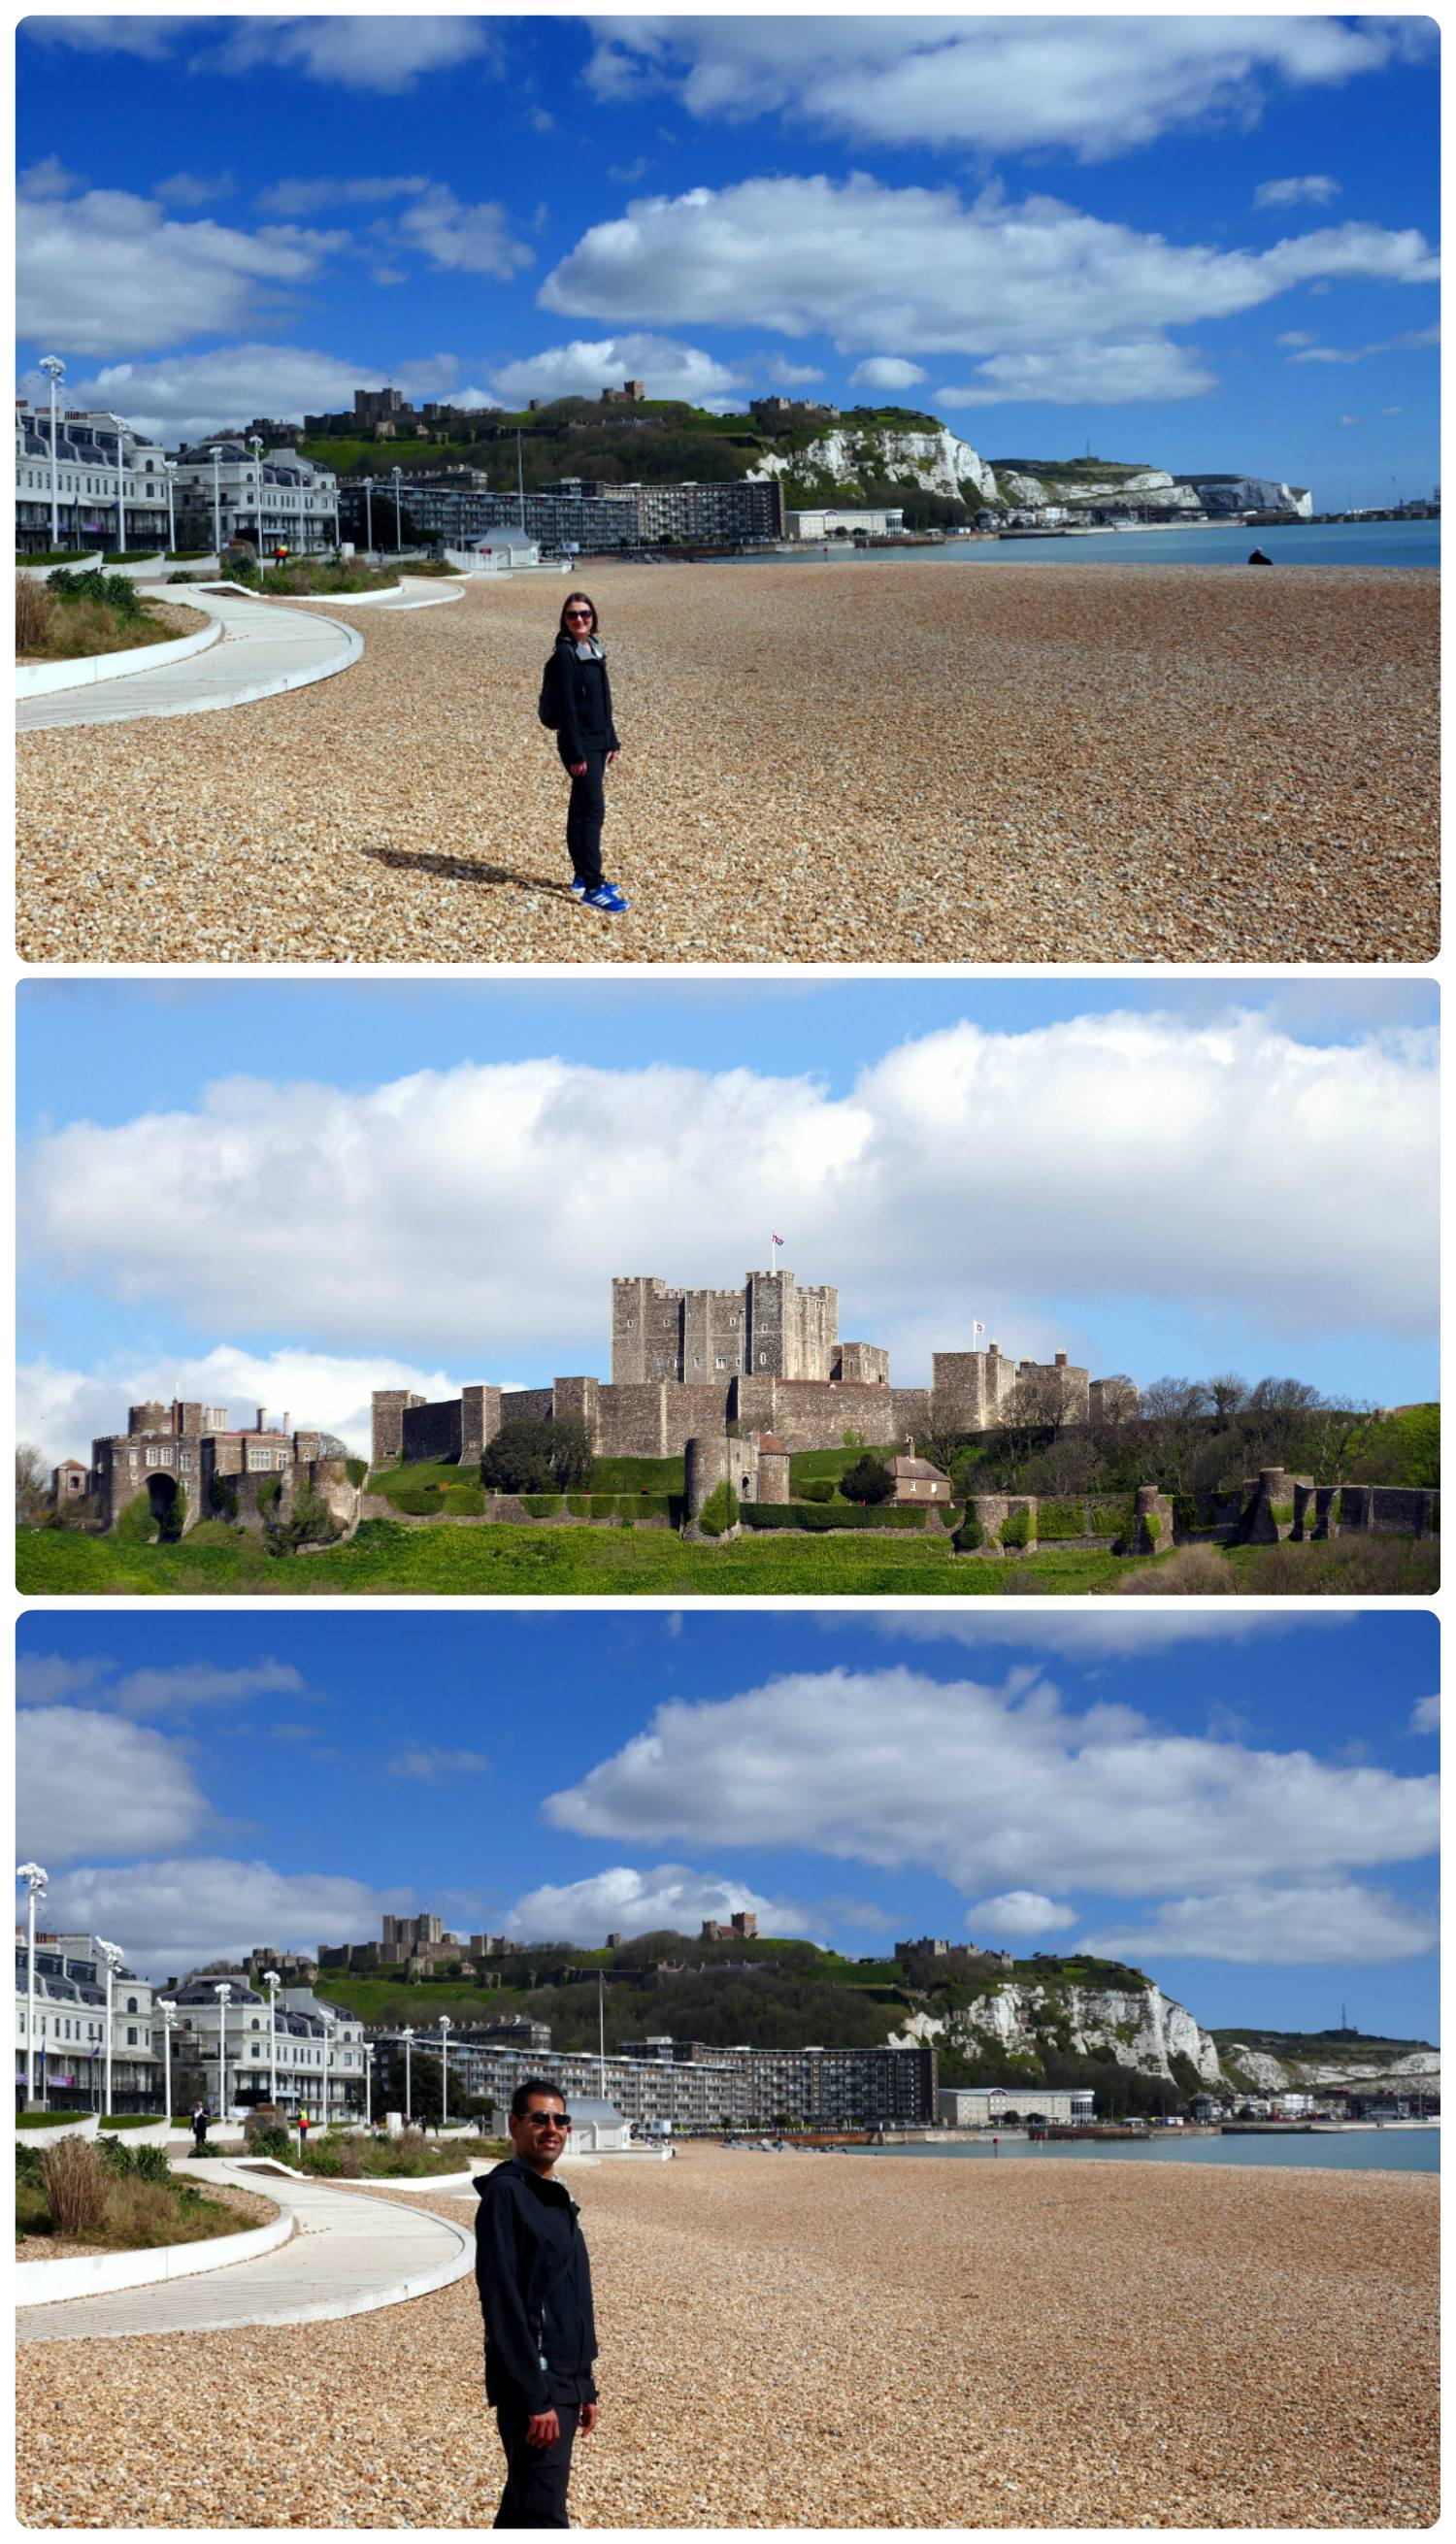 Enjoying the sun and the castle in Dover, UK.